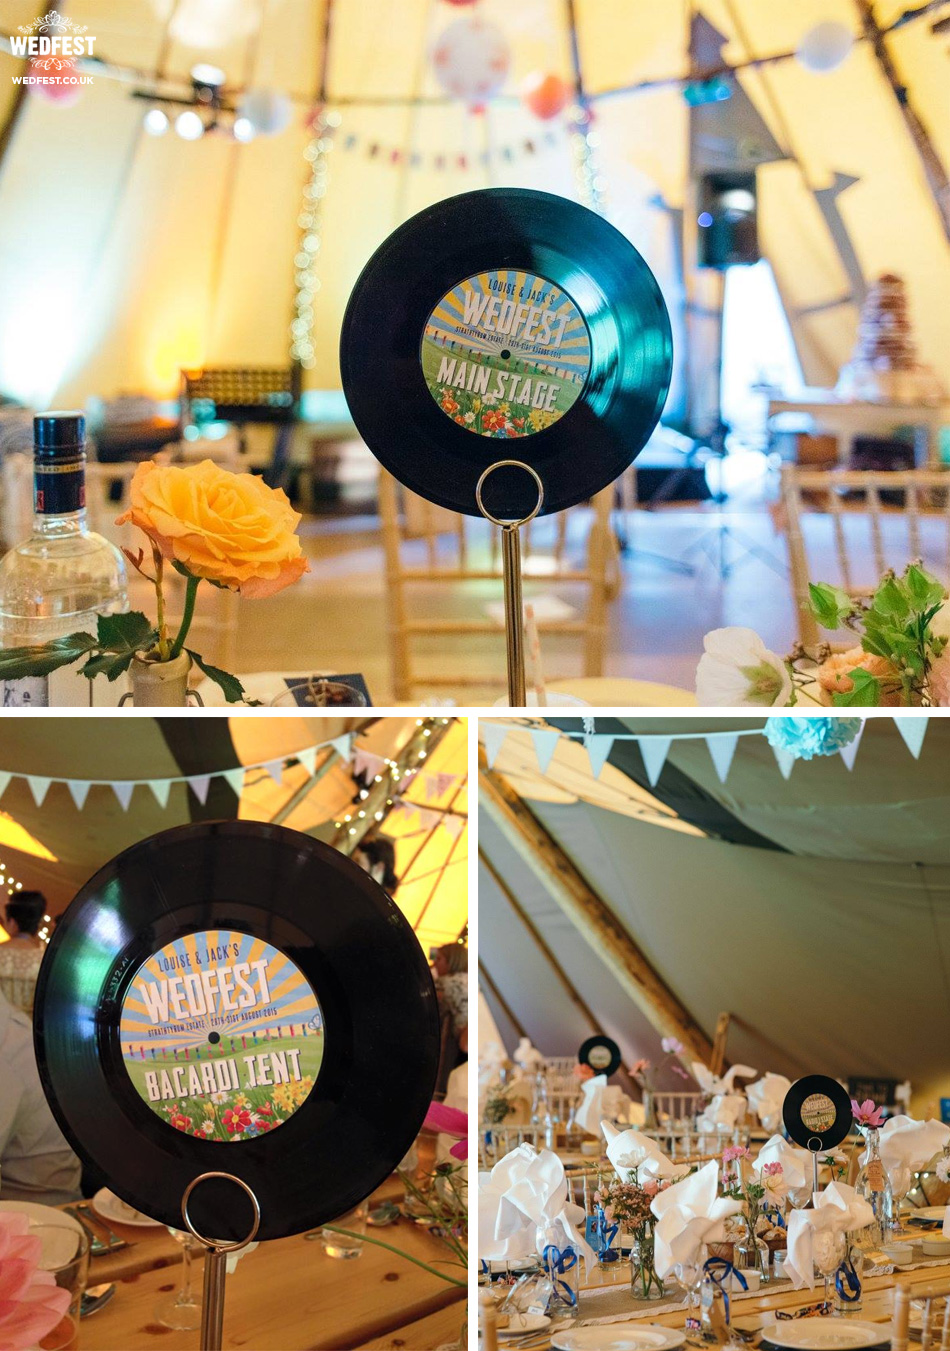 wedfest vinyl record table names